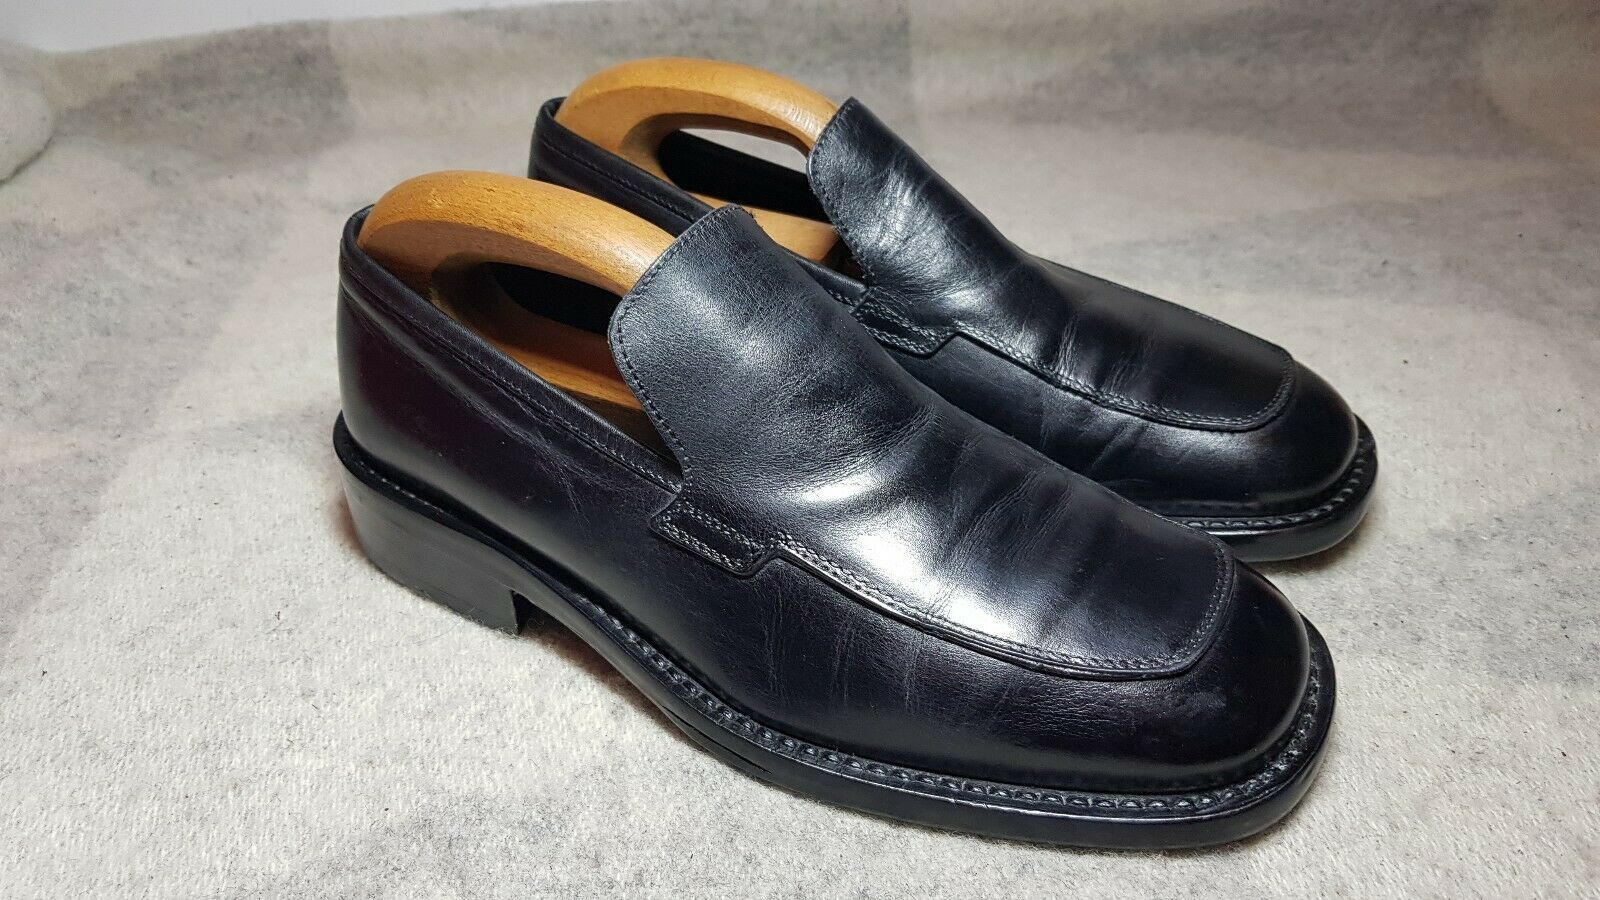 Victor Victoria Leather Loafers Size 7 Black Mens Shoes Made In Italy